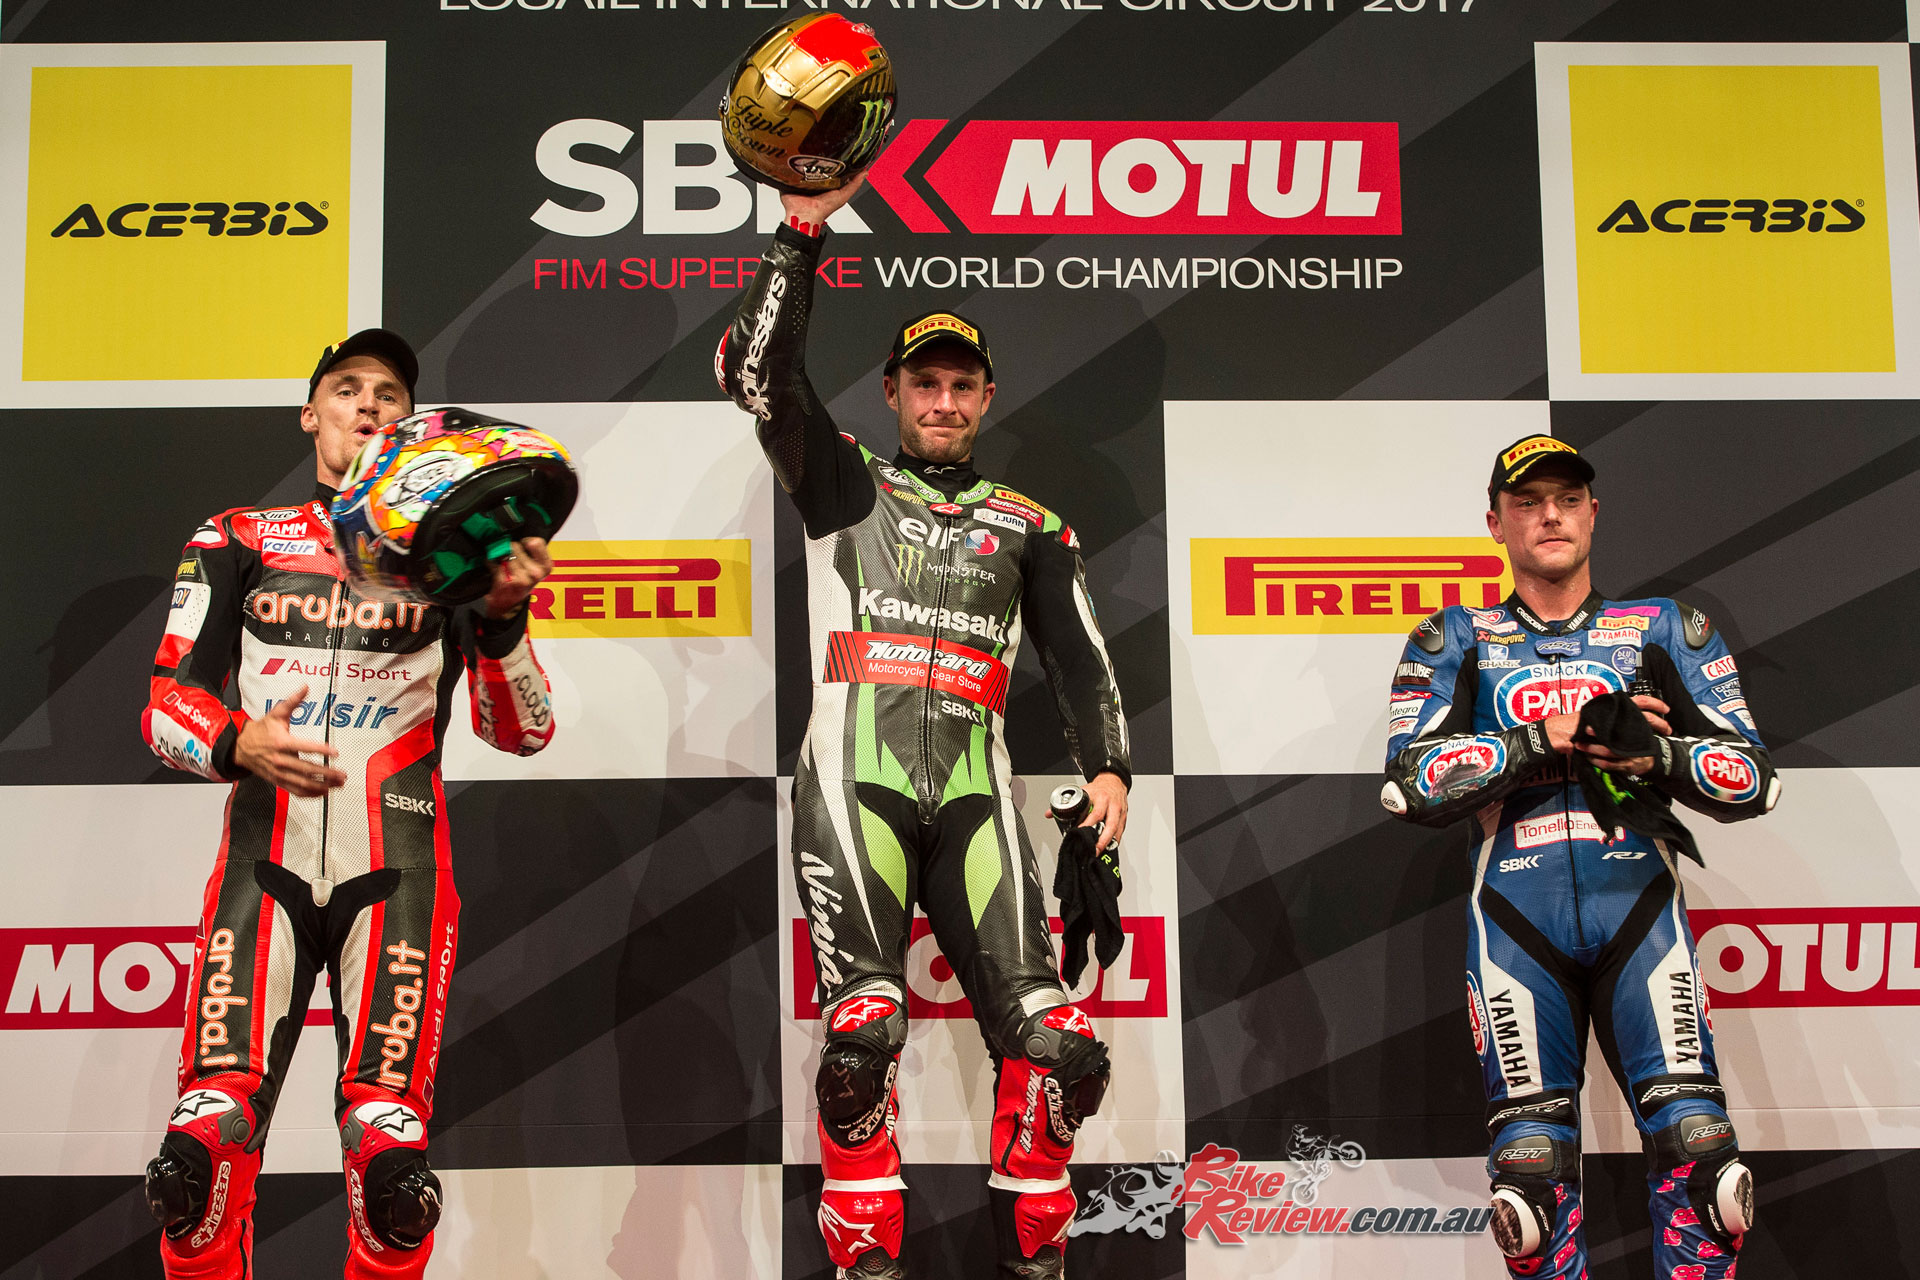 Rea takes another double win, marking a new season record for highest points earnt. Davies takes second overall with his results at Qatar.